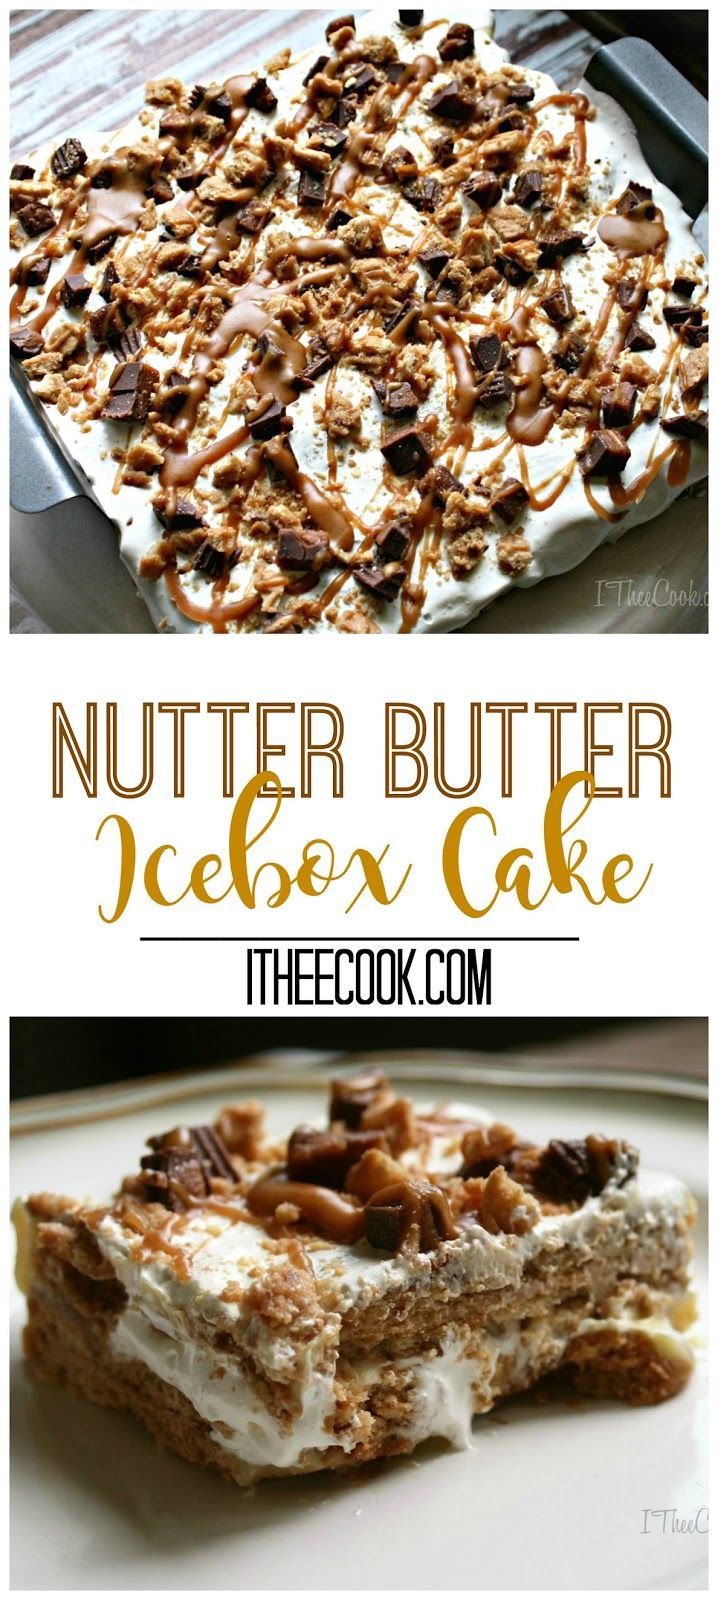 I Thee Cook: Nutter Butter Icebox Cake #TriplePFeature